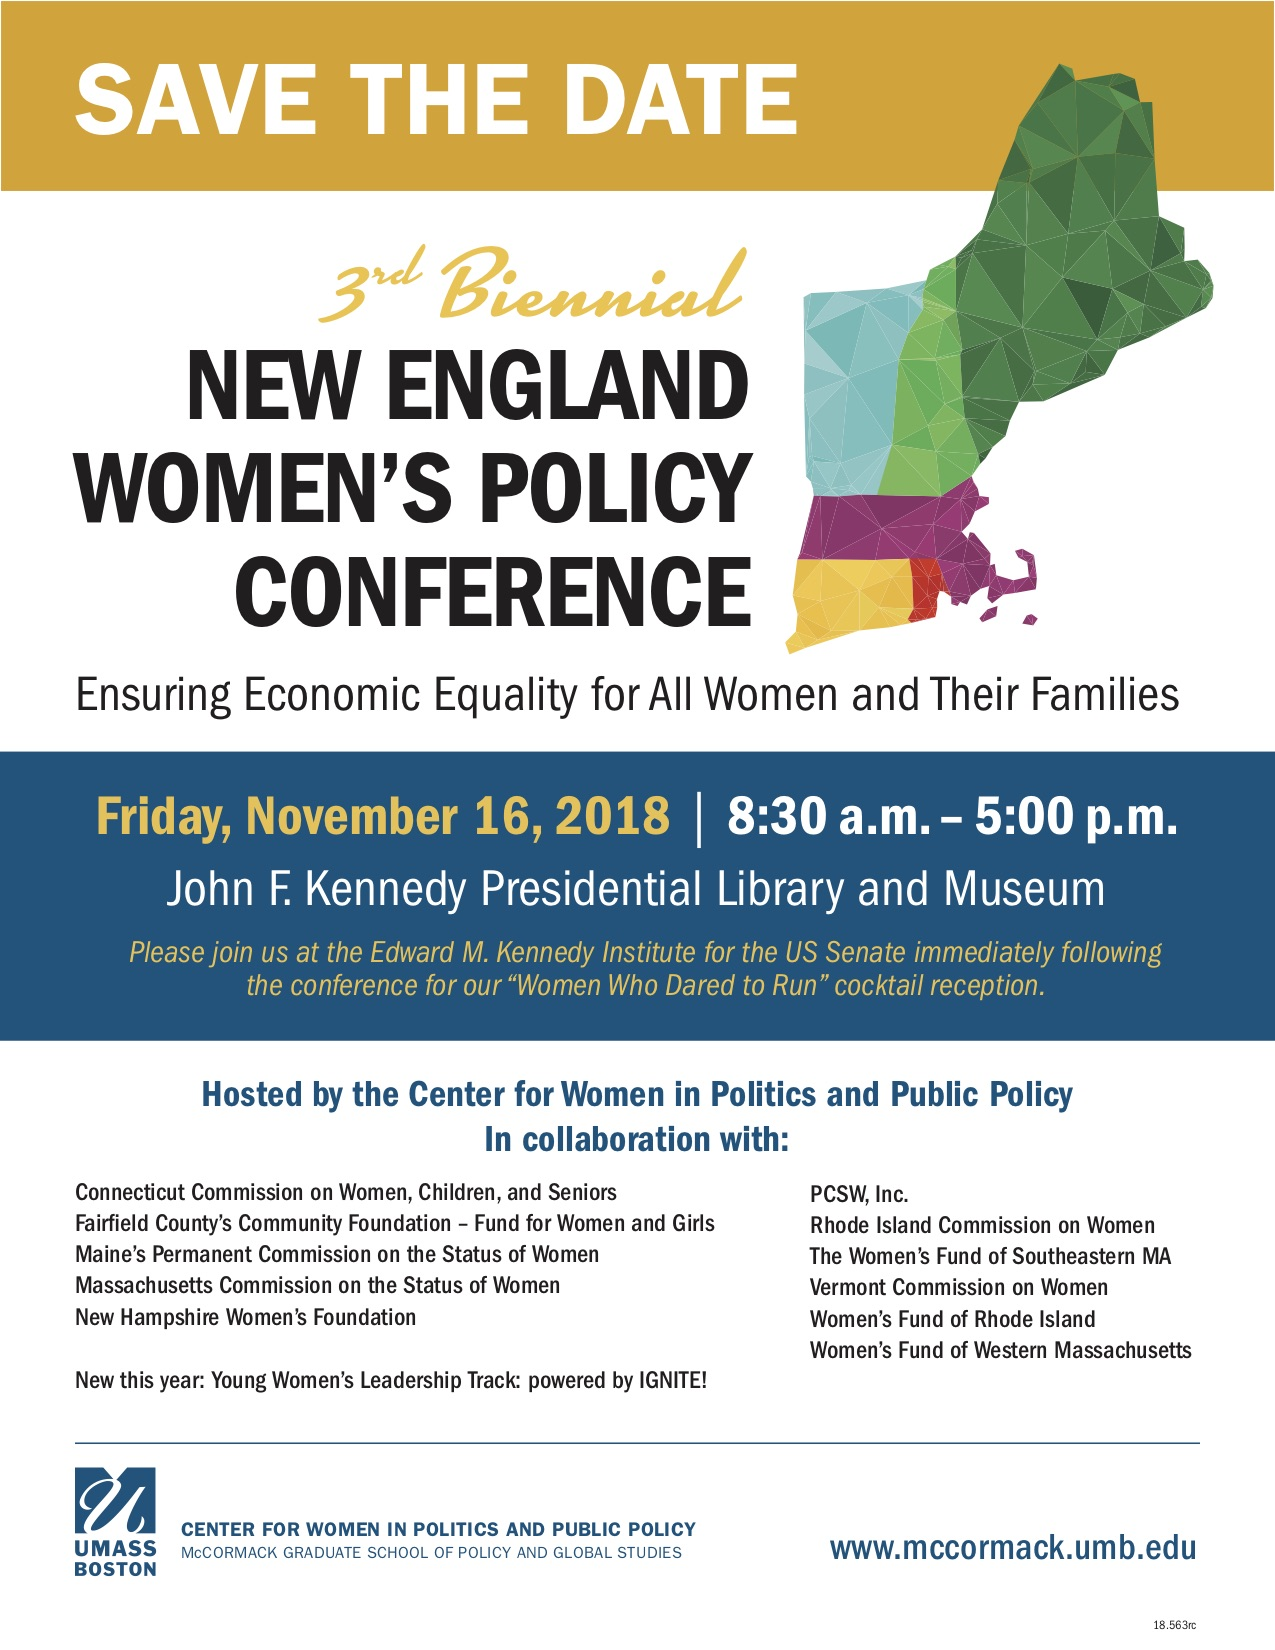 The Unfinished Agenda: New England Women's Policy Conference (2018)